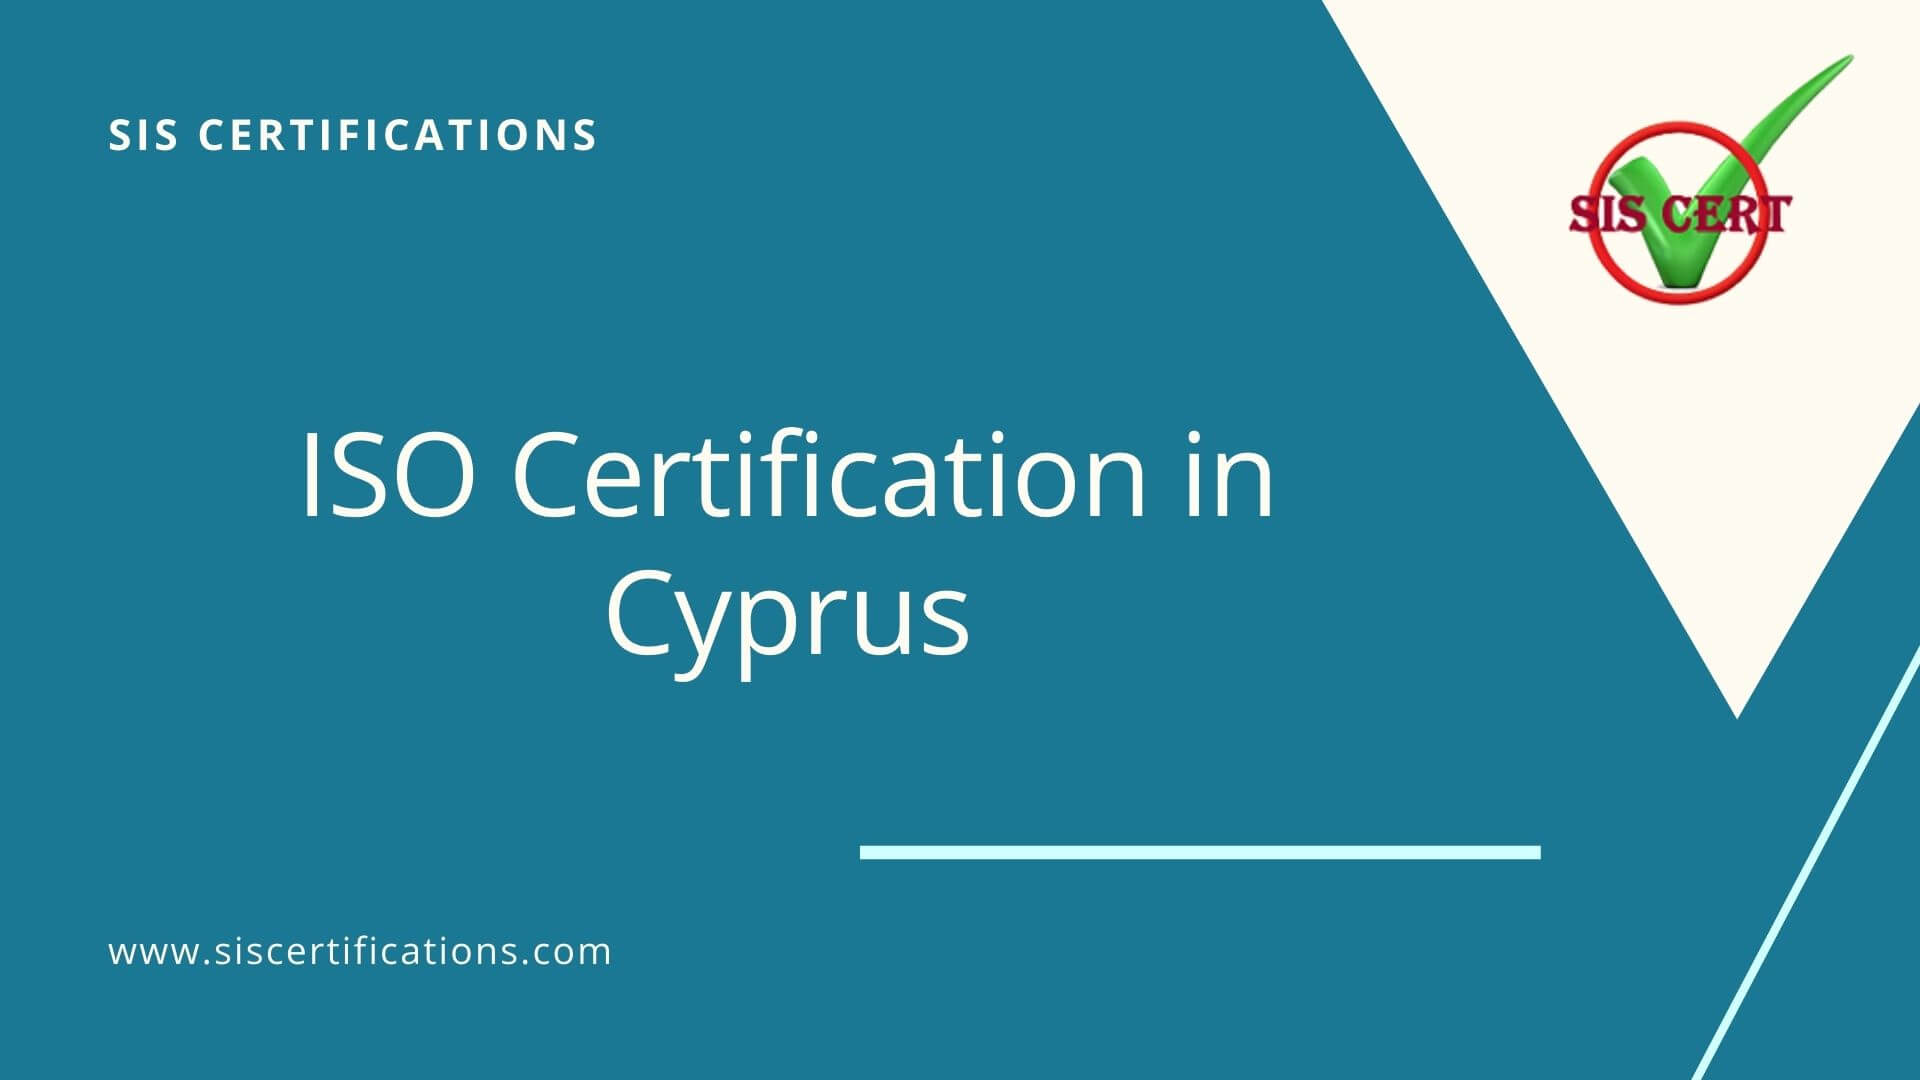 https://res.cloudinary.com/sis-certifications/image/upload/v1600687546/siscertifications.com/ISO_Certification_in_Cyprus_ydudjv.jpg